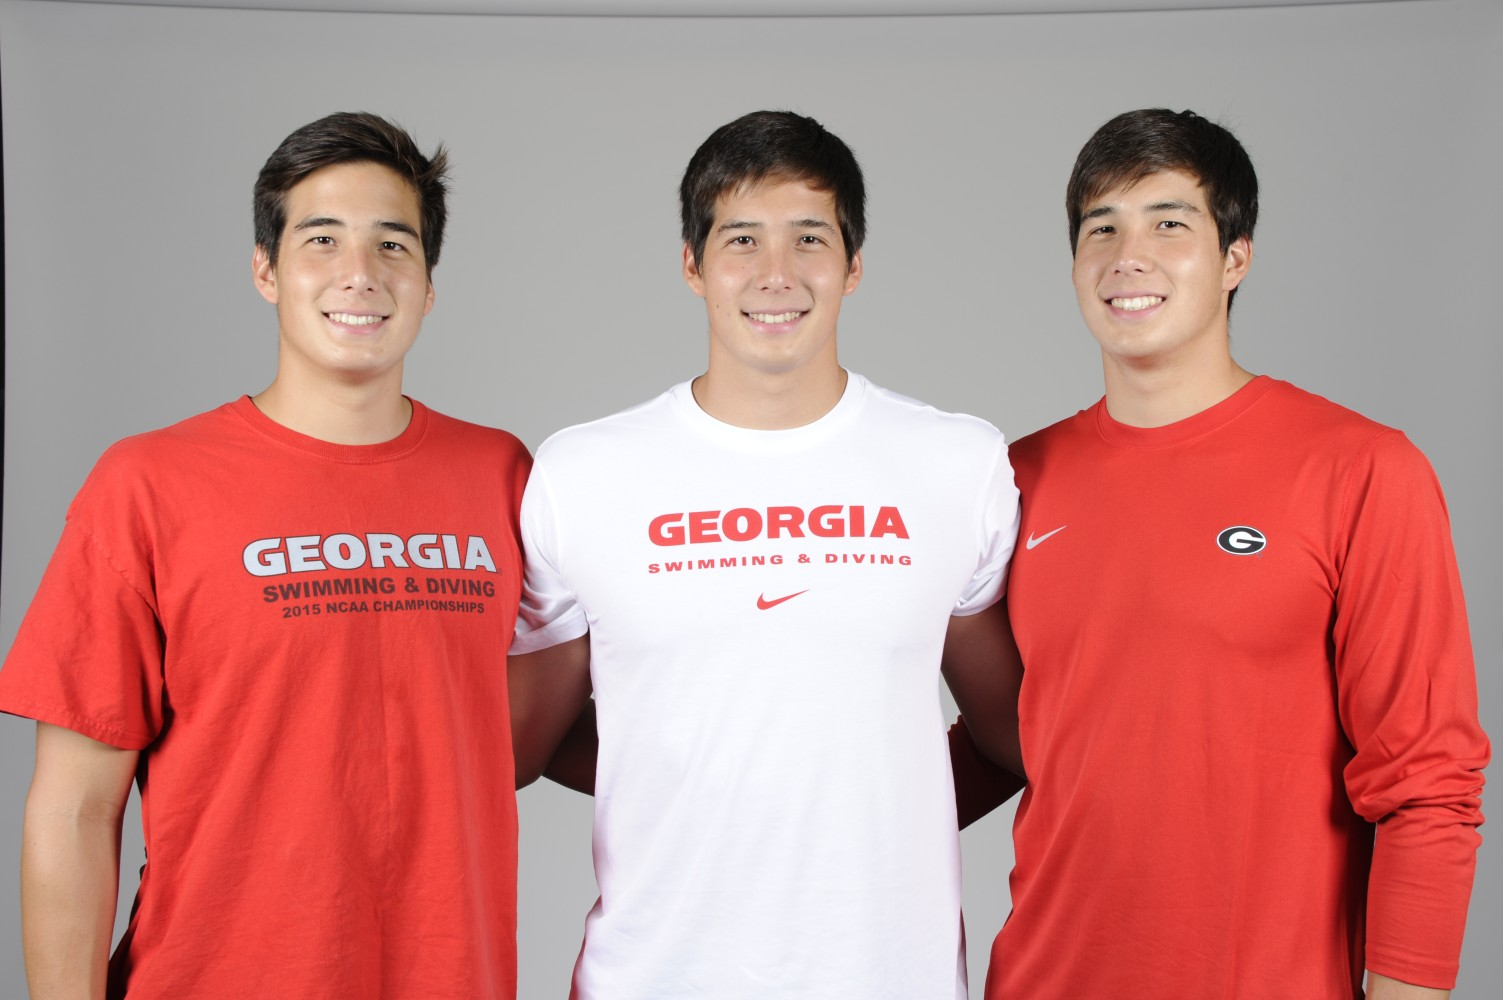 Georgia 39 s 39 silent assassin 39 beats triplet brothers to swim for u s in rio nbc news for John jay college swimming pool